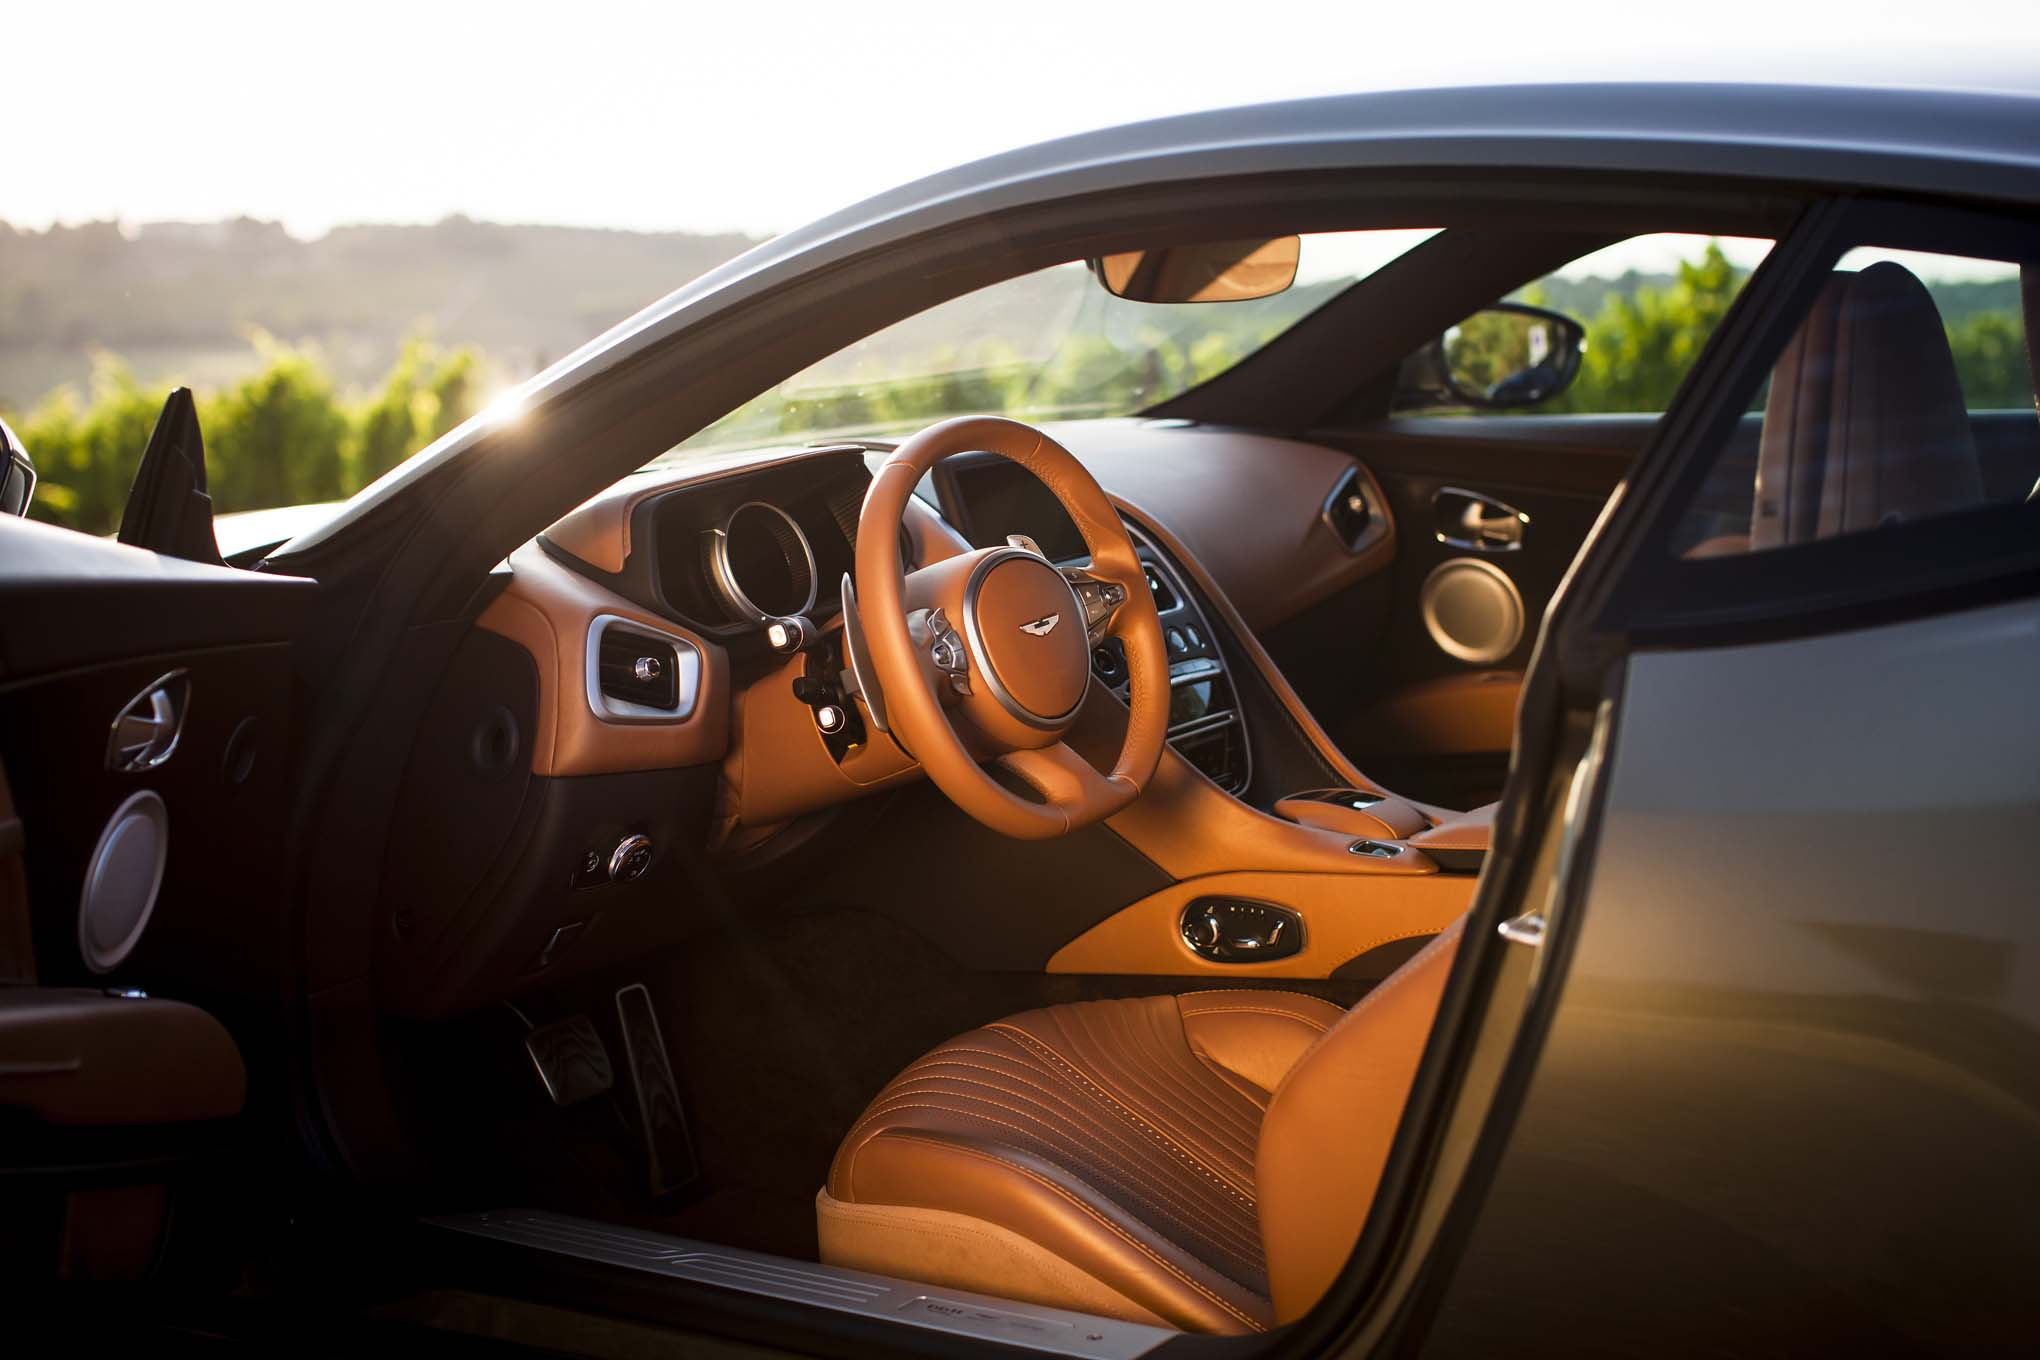 2017 Aston Martin DB11 interior view | Automobile Magazine